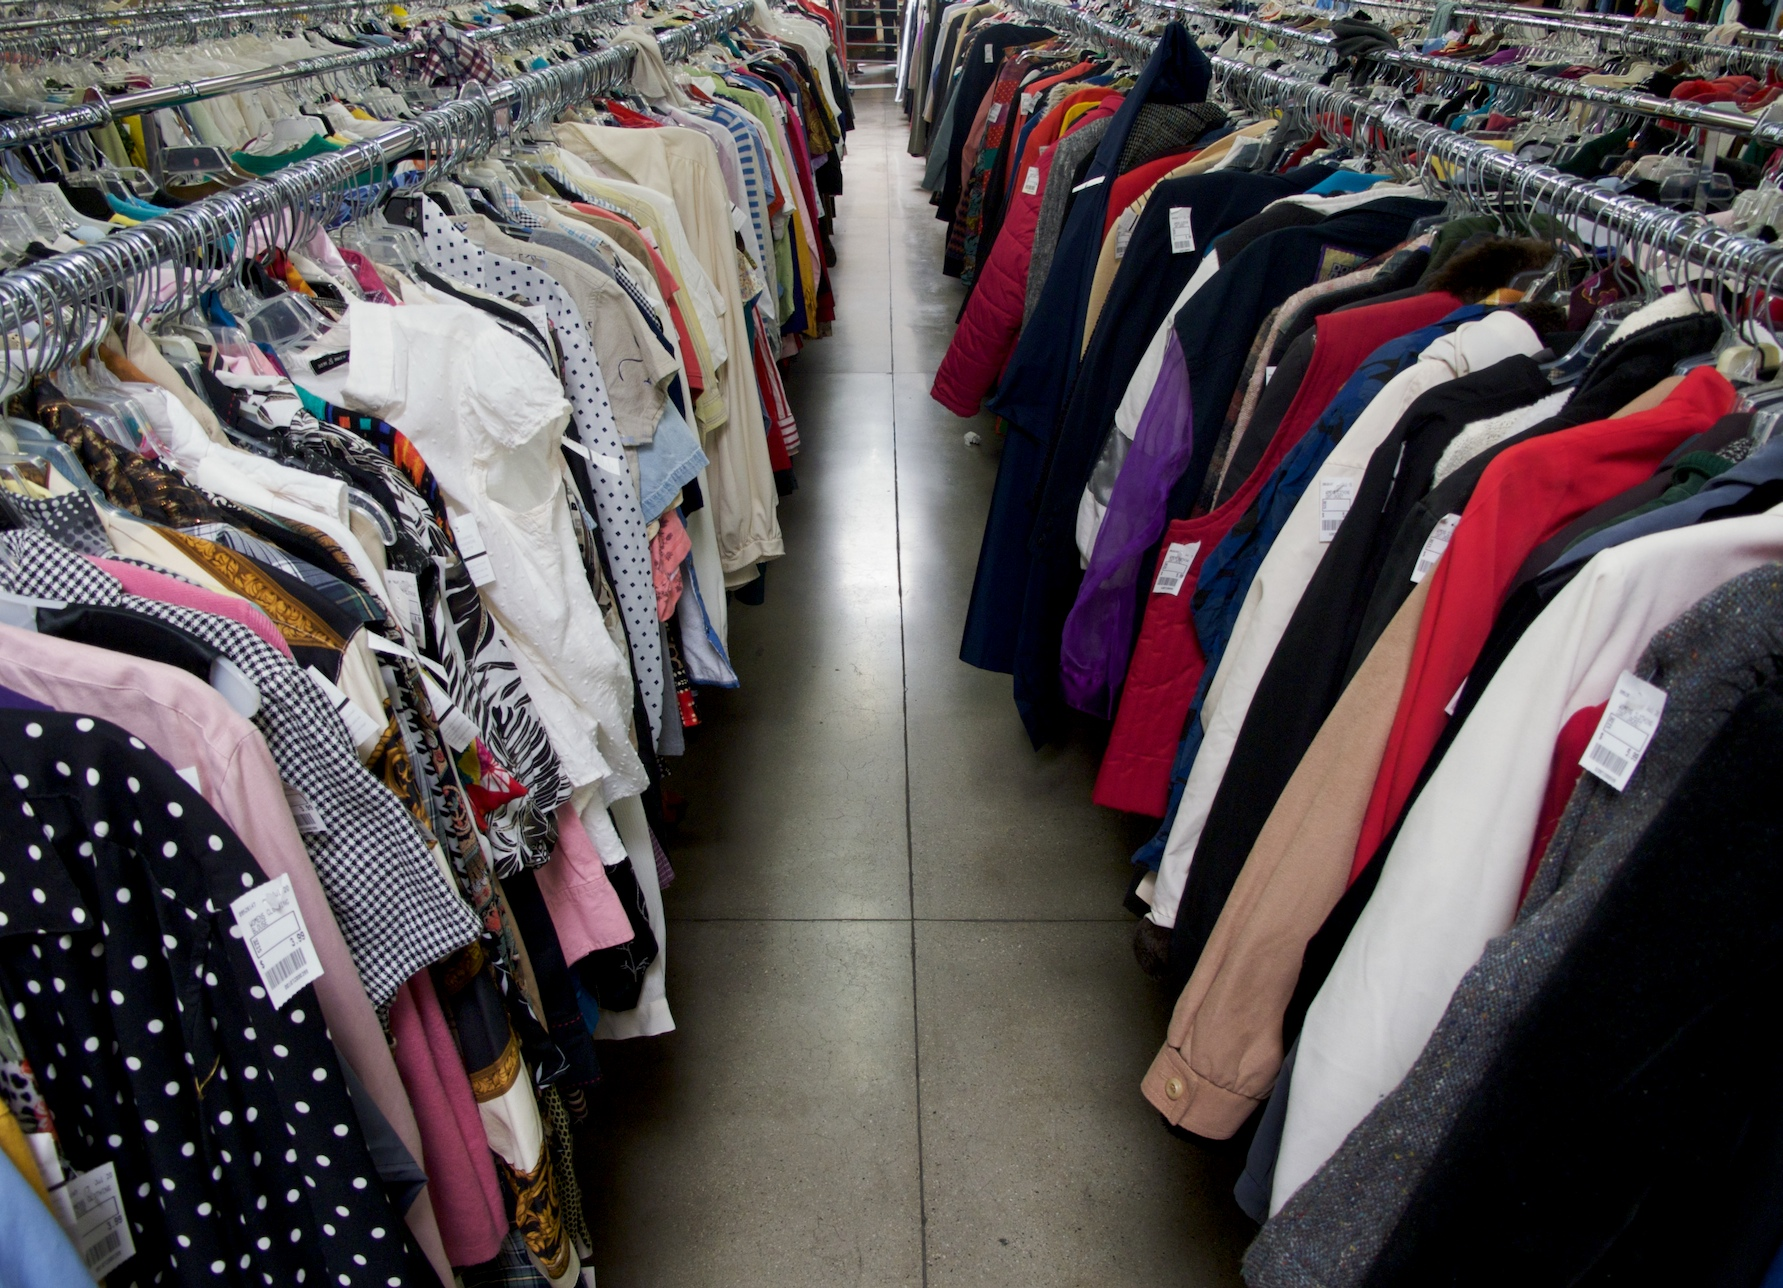 Clothes stores Army clothing stores